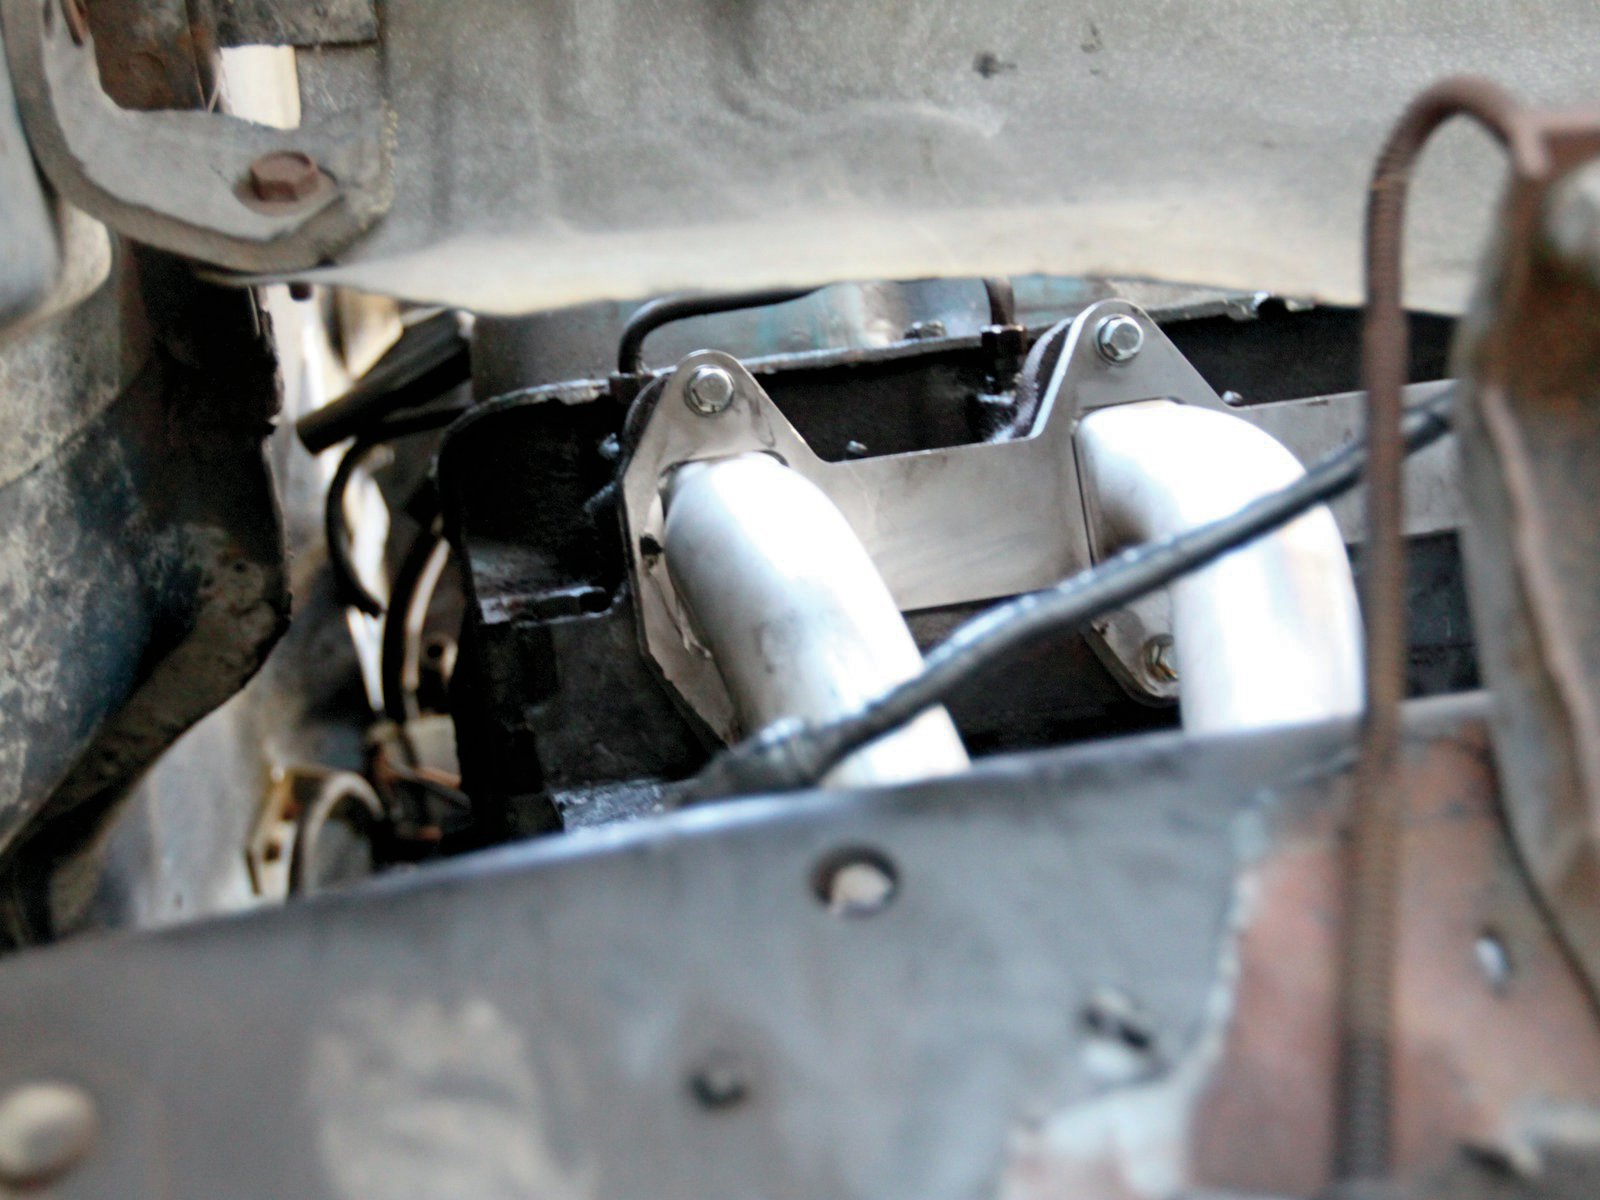 21. Tightening the header bolts on the passenger side was accomplished partly by accessing bolts through the fenderwell and frame.